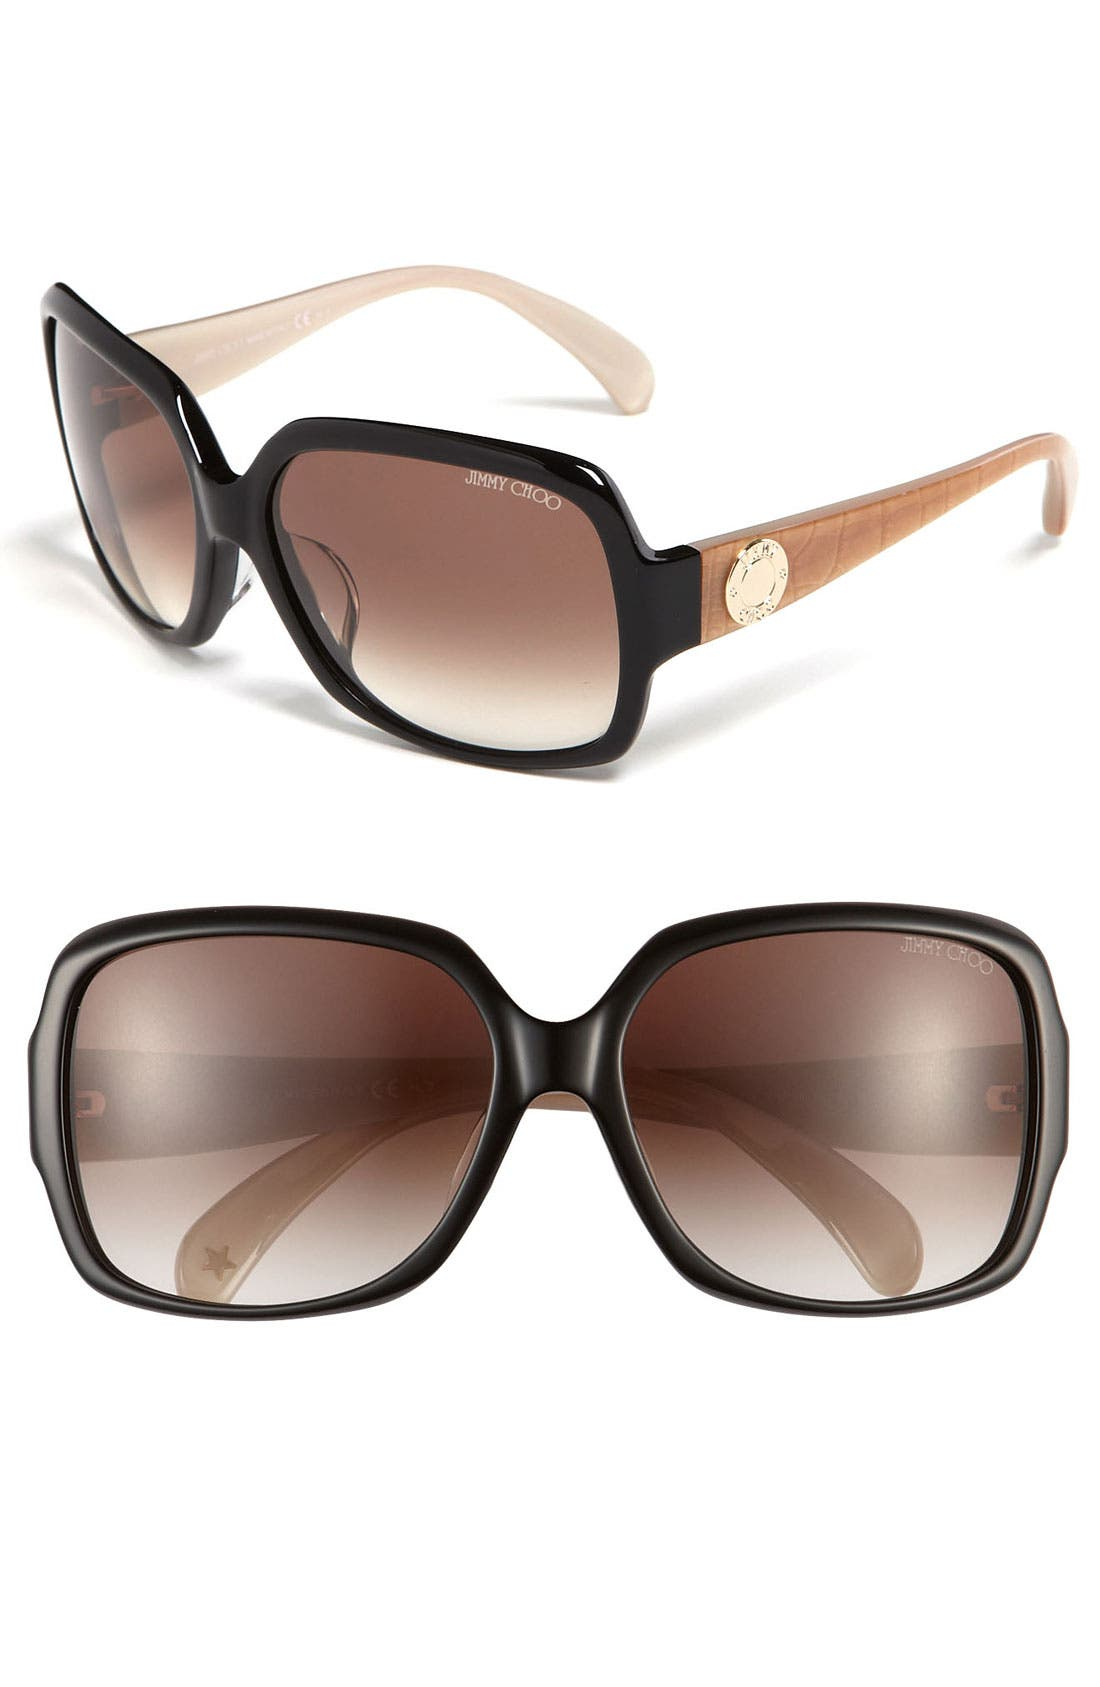 Alternate Image 1 Selected - Jimmy Choo 'Veruschka - Special Fit' Sunglasses